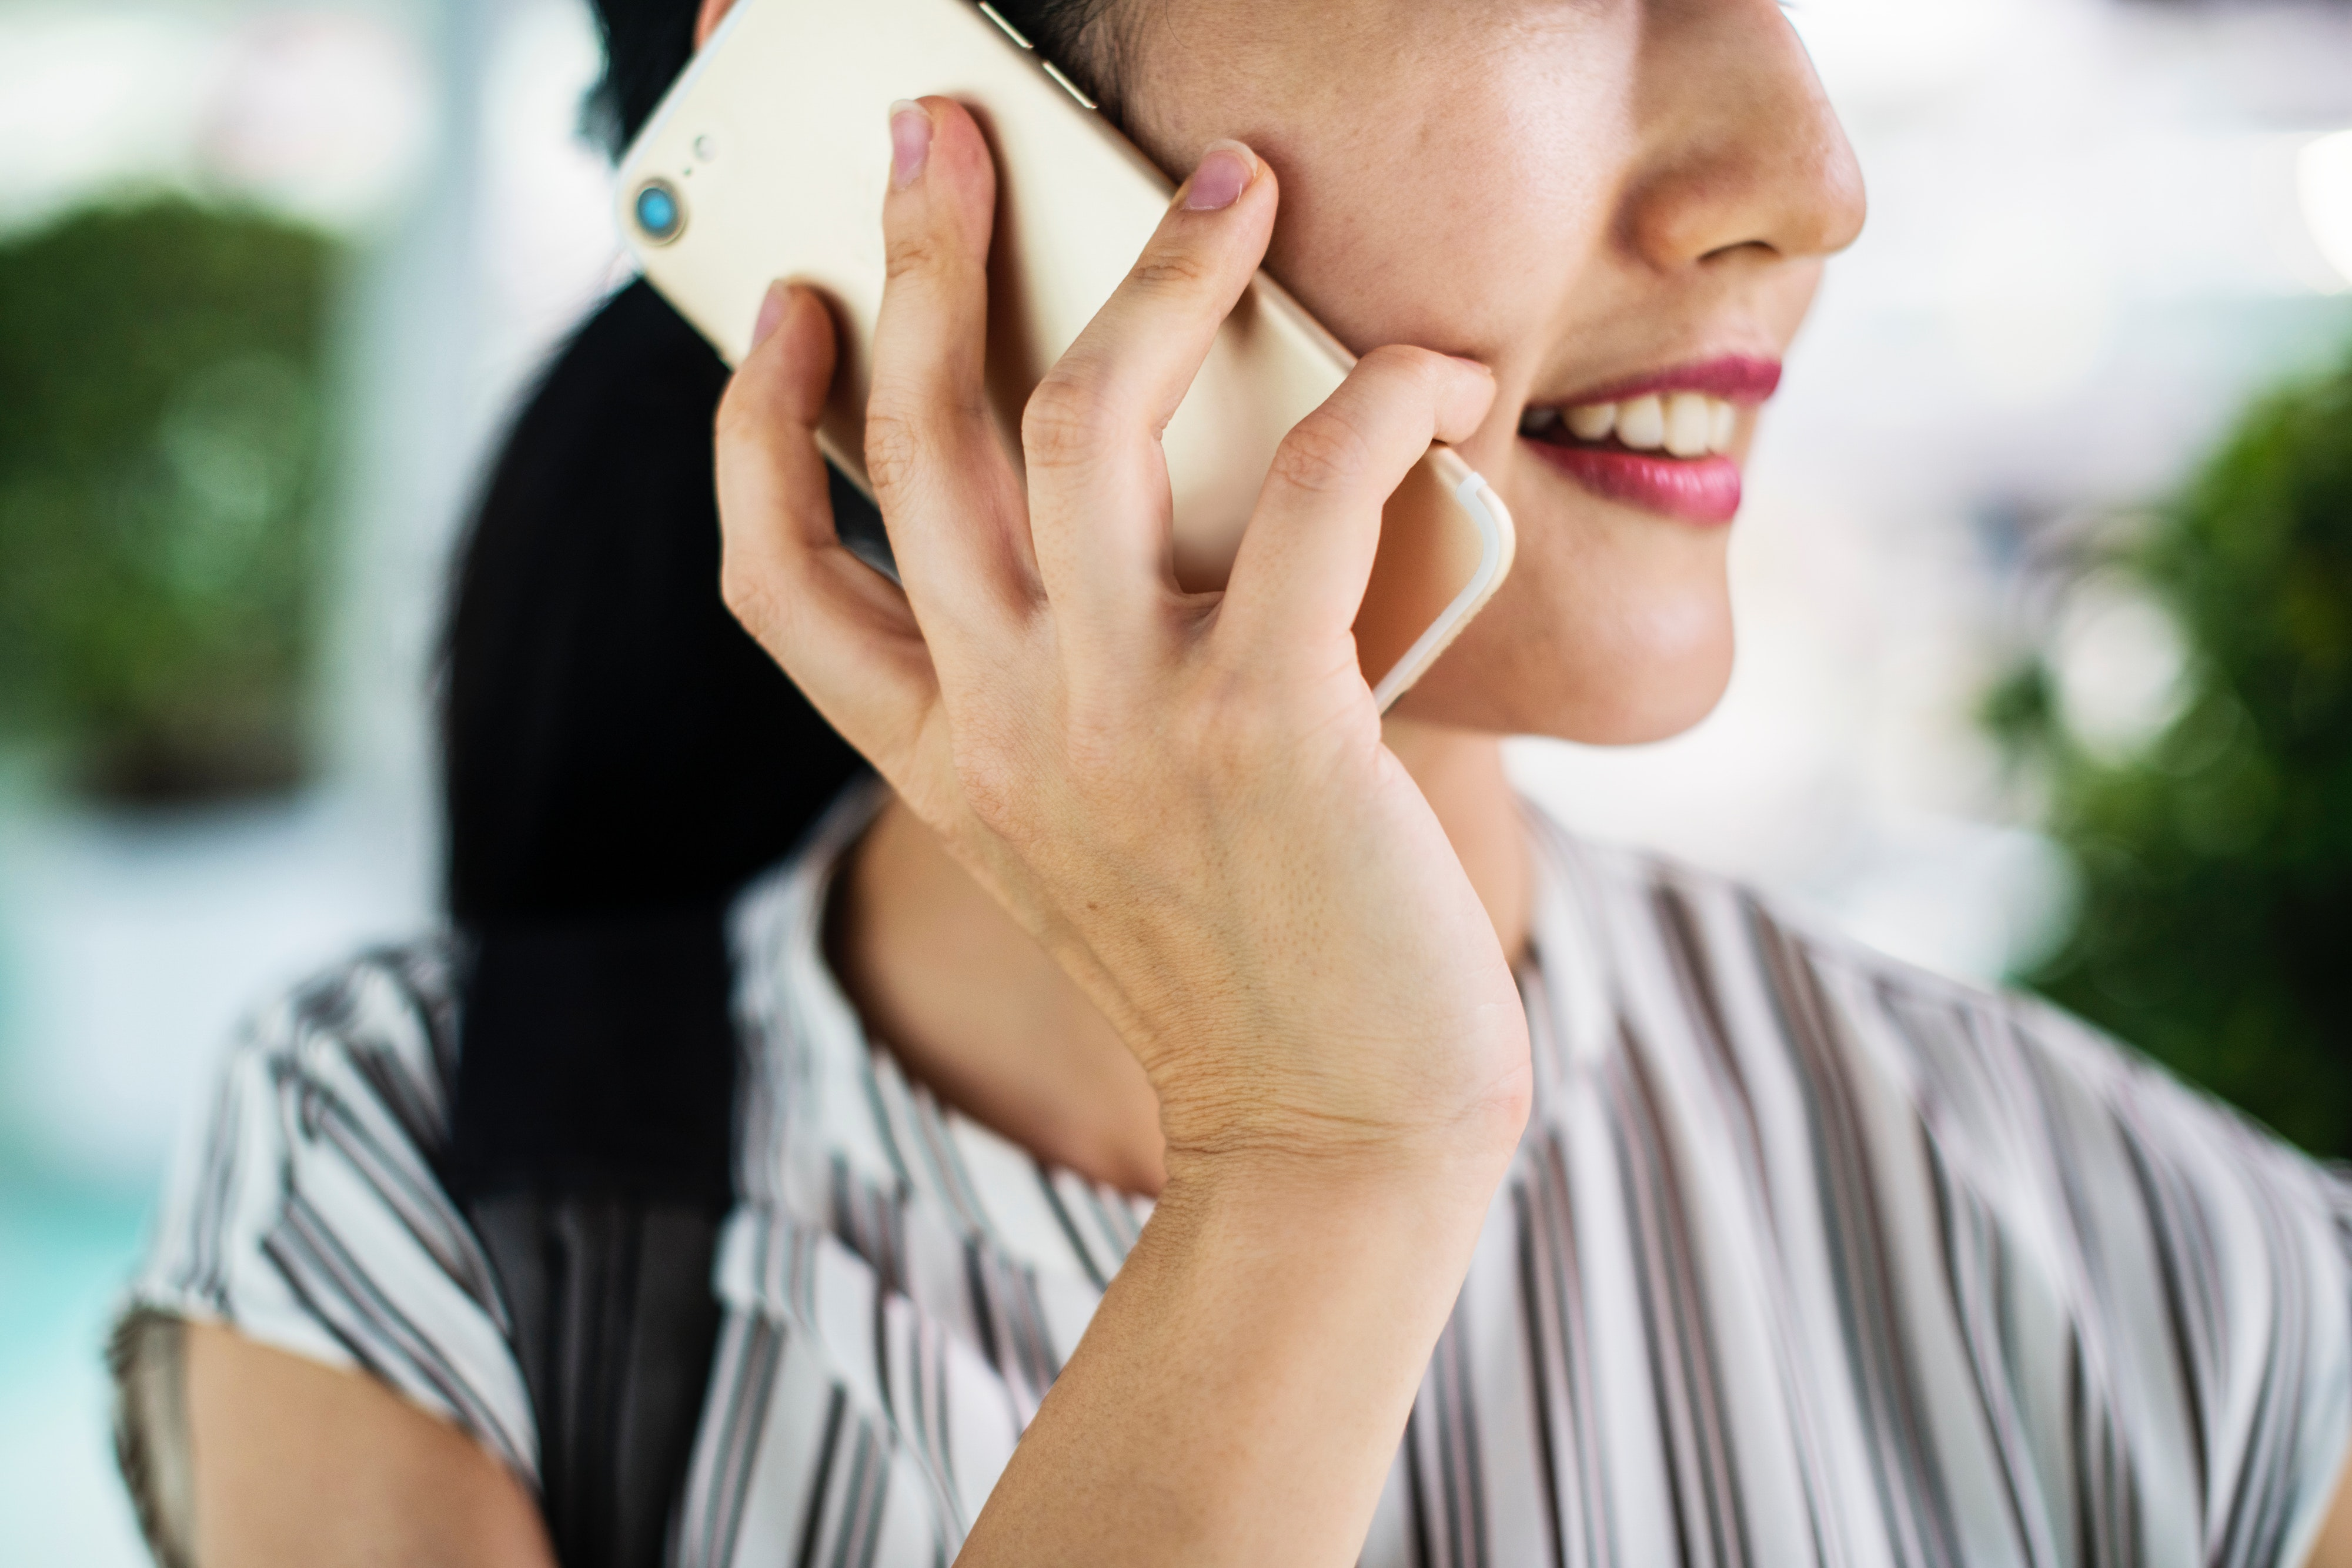 Young Generation's Attitude Towards Phone Calls - Thrive Global